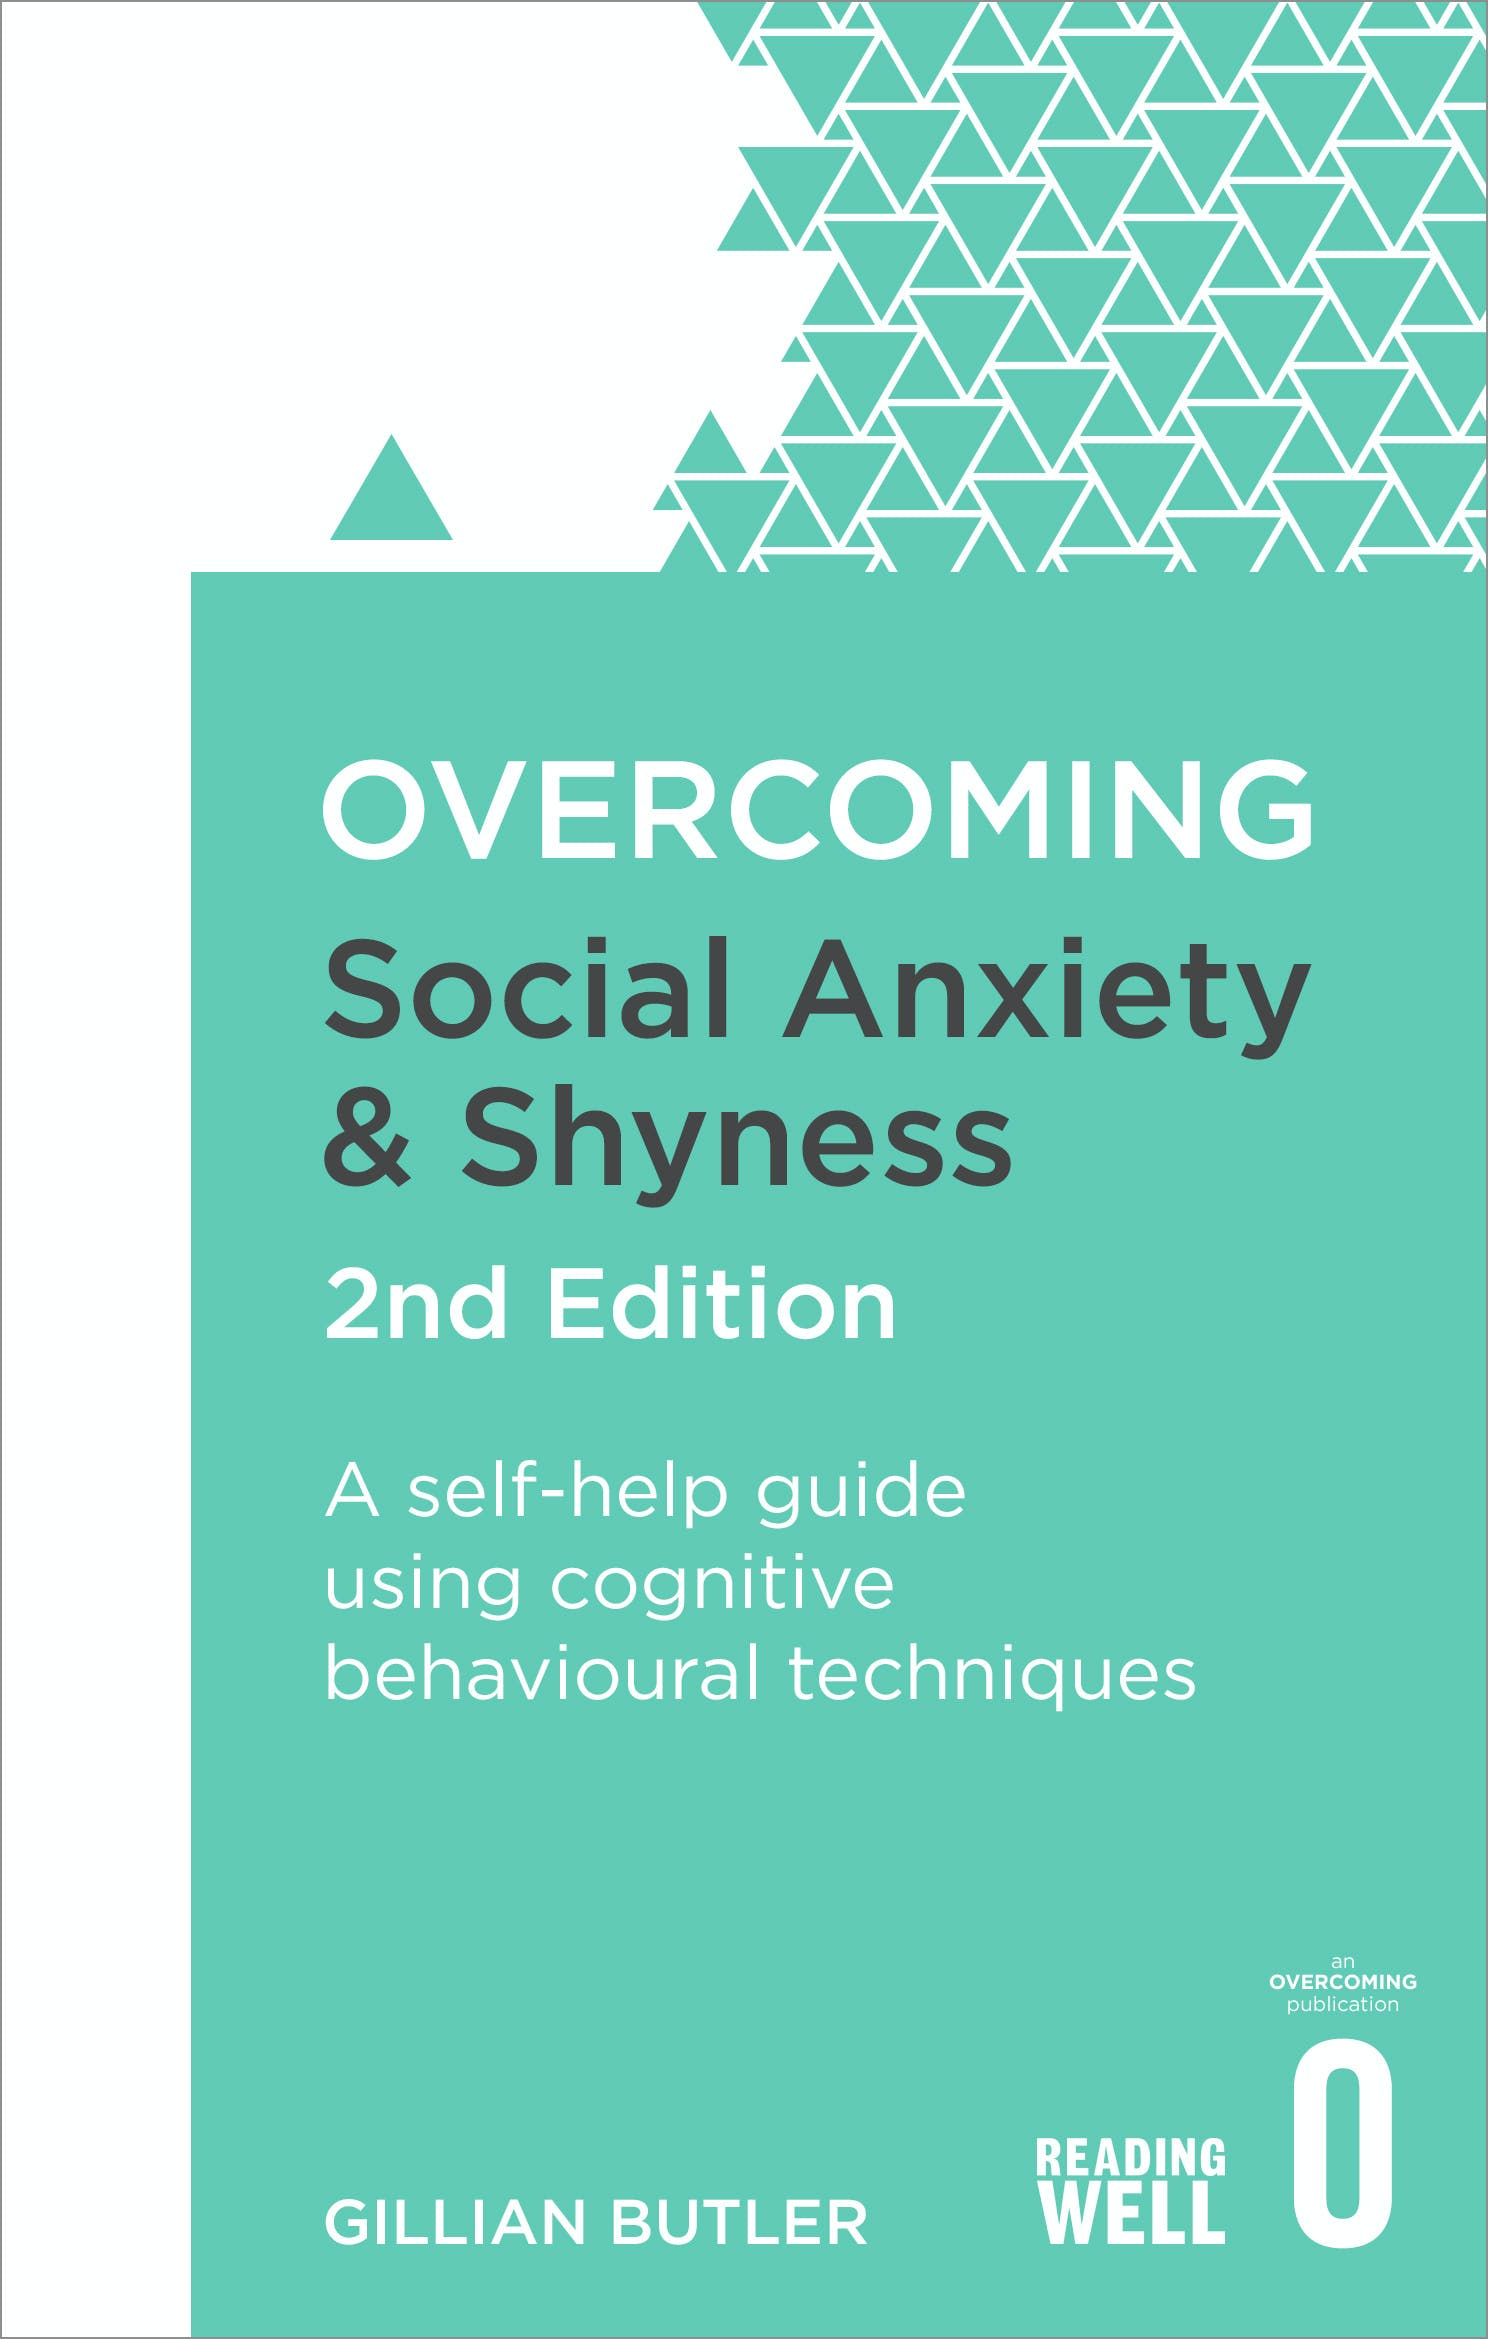 Download Overcoming Social Anxiety And Shyness A Self Help Guide Using Cognitive Behavioral Techniques By Gillian Butler